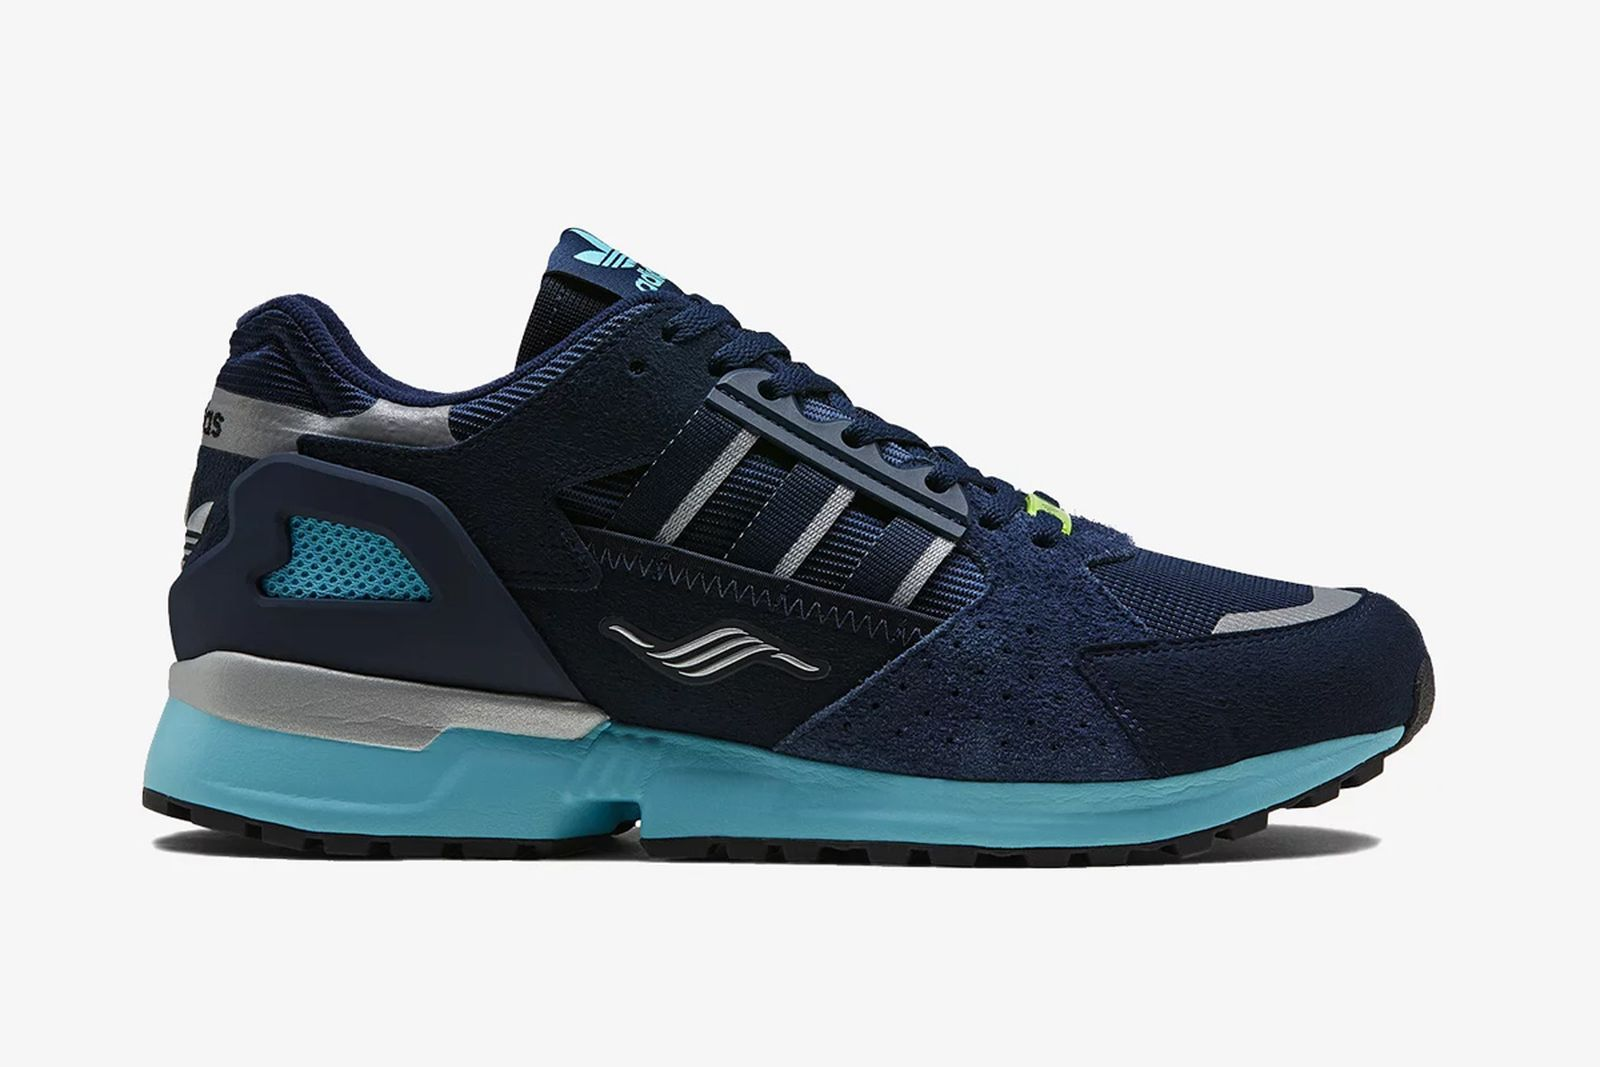 adidas-consortium-zx-10000-jc-release-date-price-03